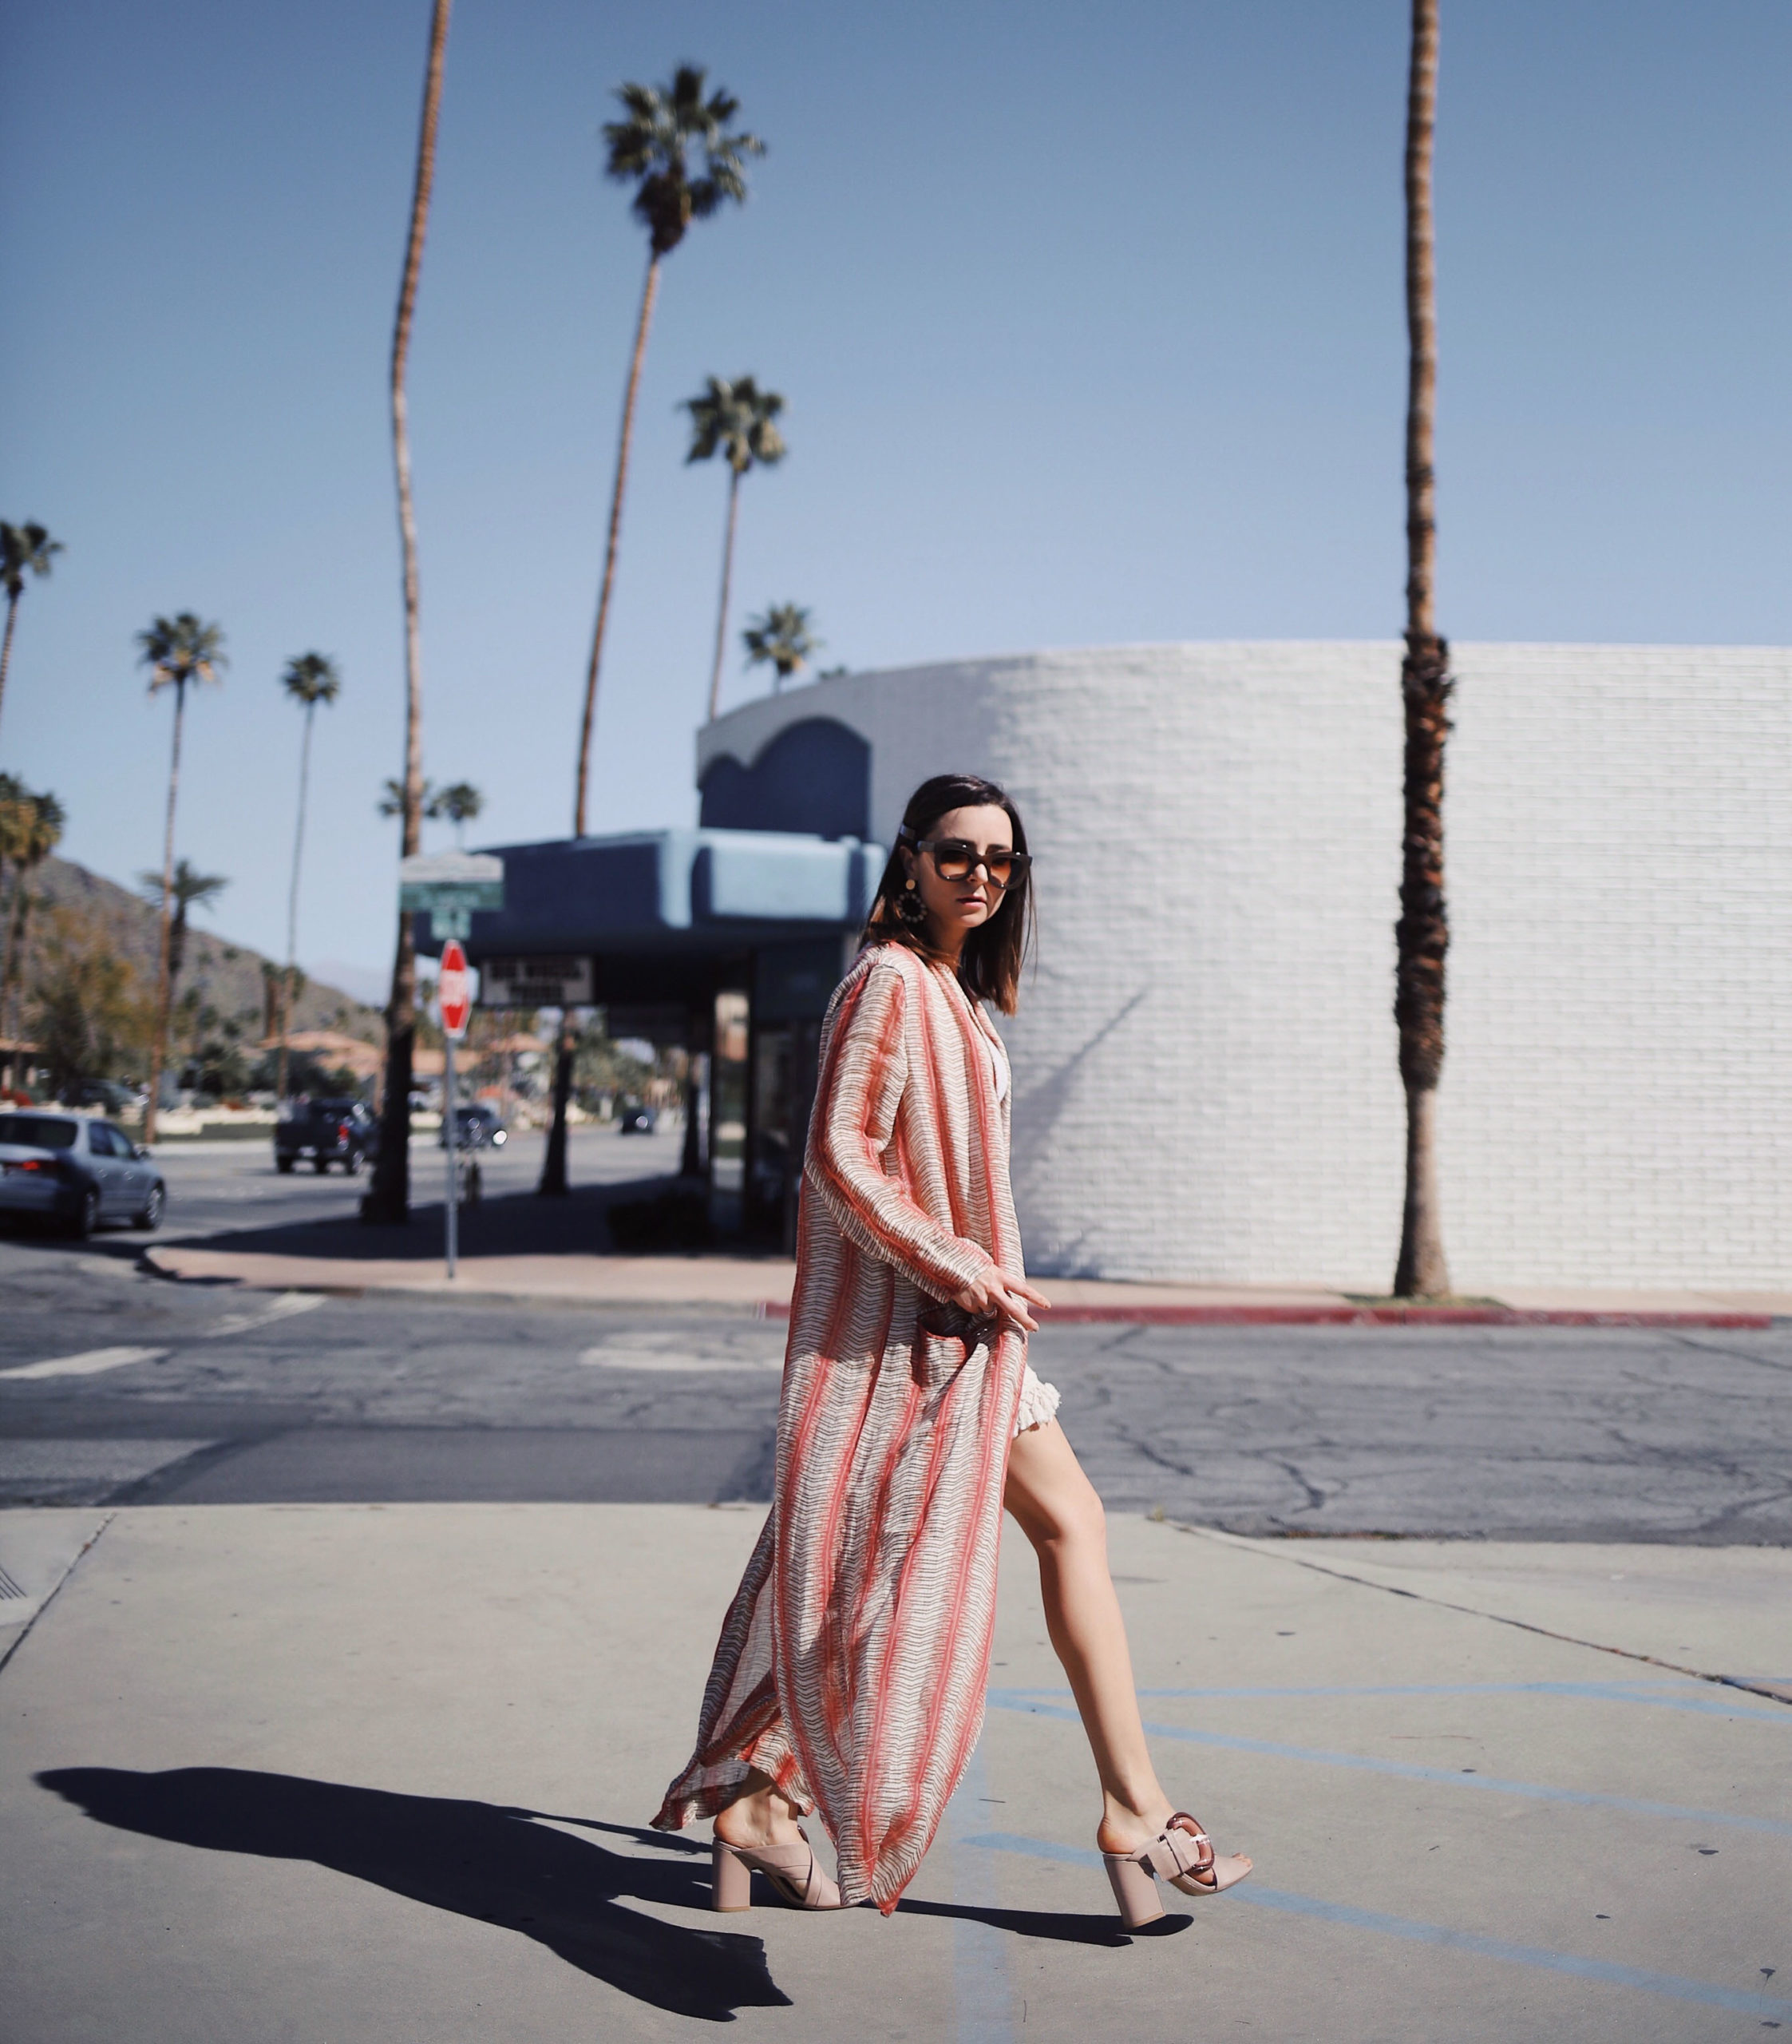 California Dreaming +california + road trip + los angeles + julia comil + modersvp + fashion + editorial + influencer + french + pomandere + robe + thierry lasry + sunglasses + AGL shoes + palm springs